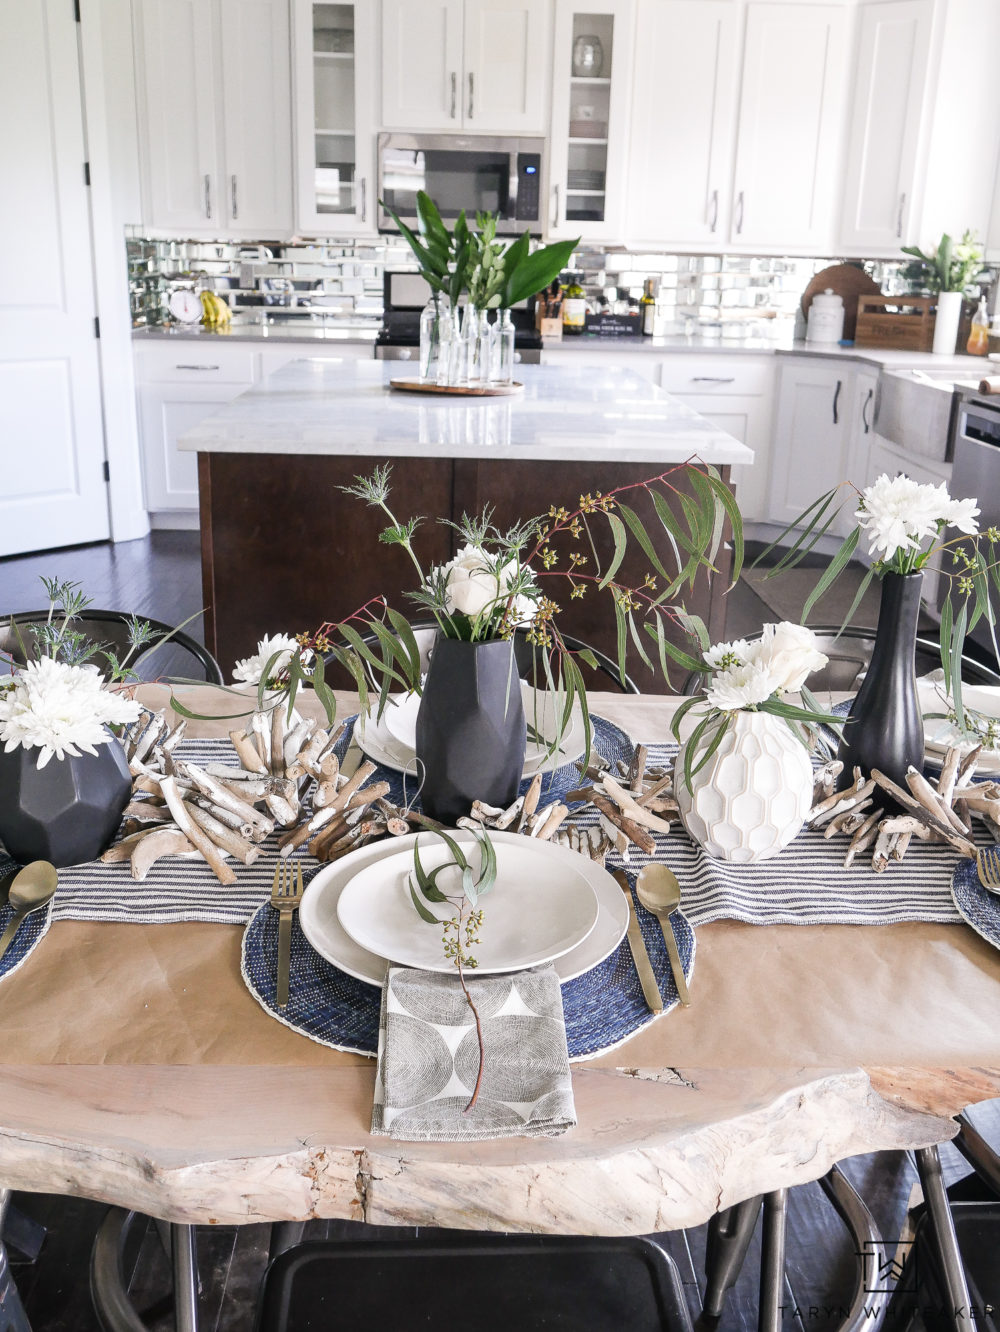 Modern Coastal Summer Table Decor mixing navy and white ticking and modern elements.